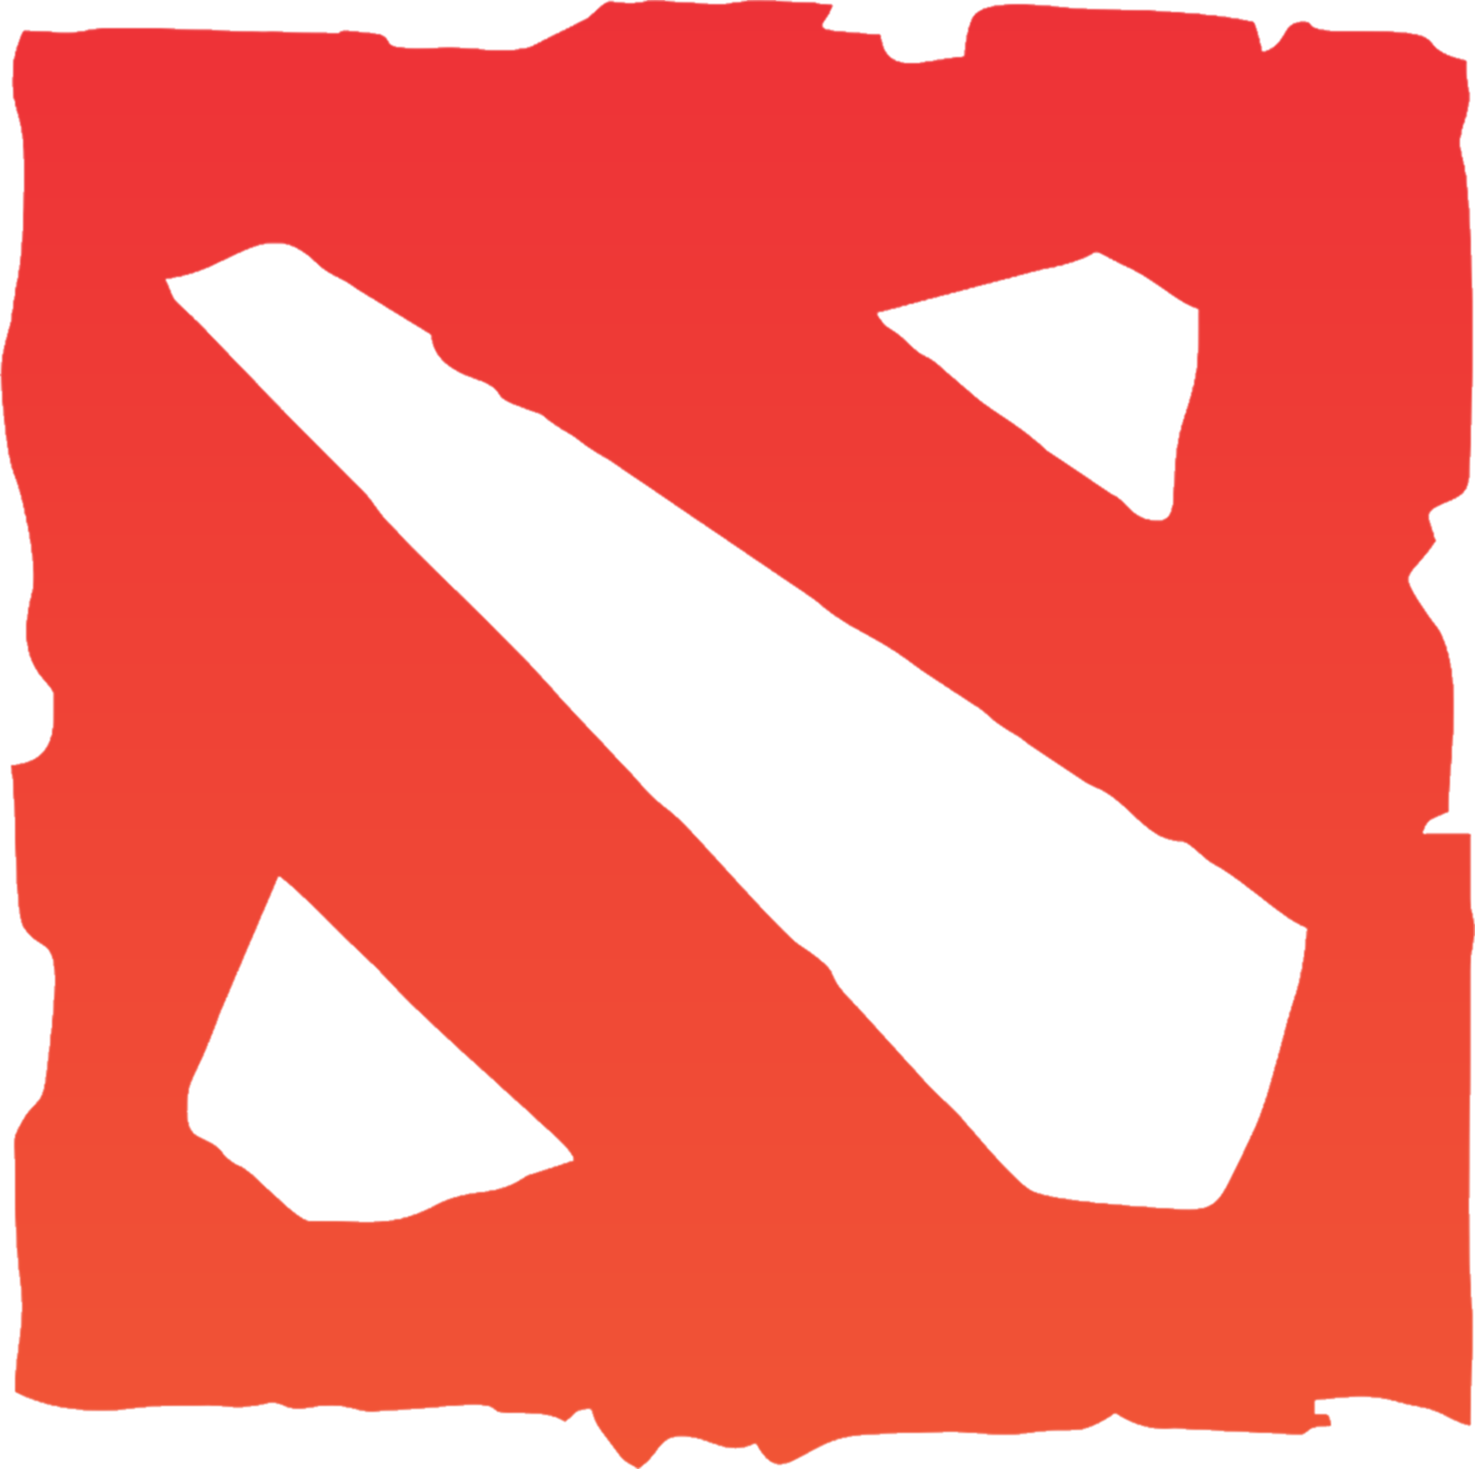 No Creativity Dota 2 Team